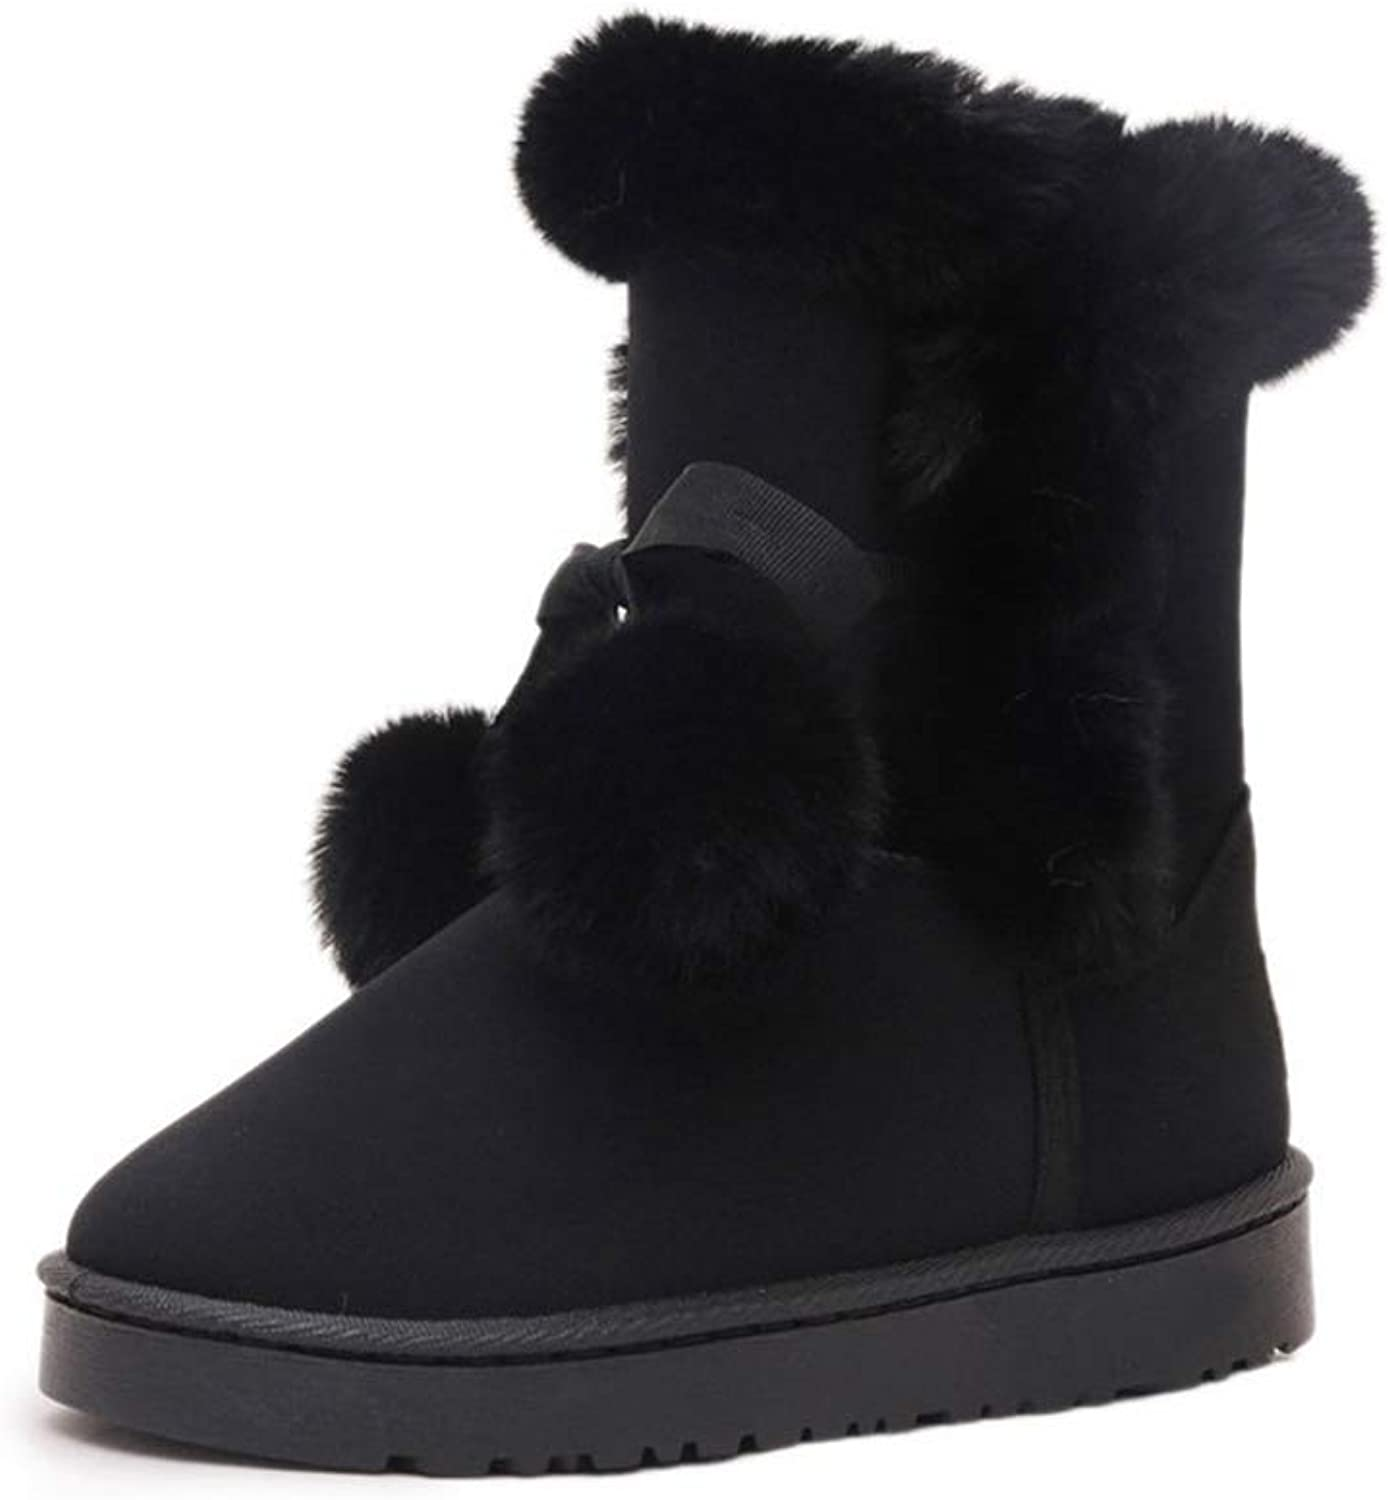 JOYBI Women Winter Fashion Round Toe Ankle Boots Fur Lined Comfortable Flat Non-Slip Girls Warm Snow Boot